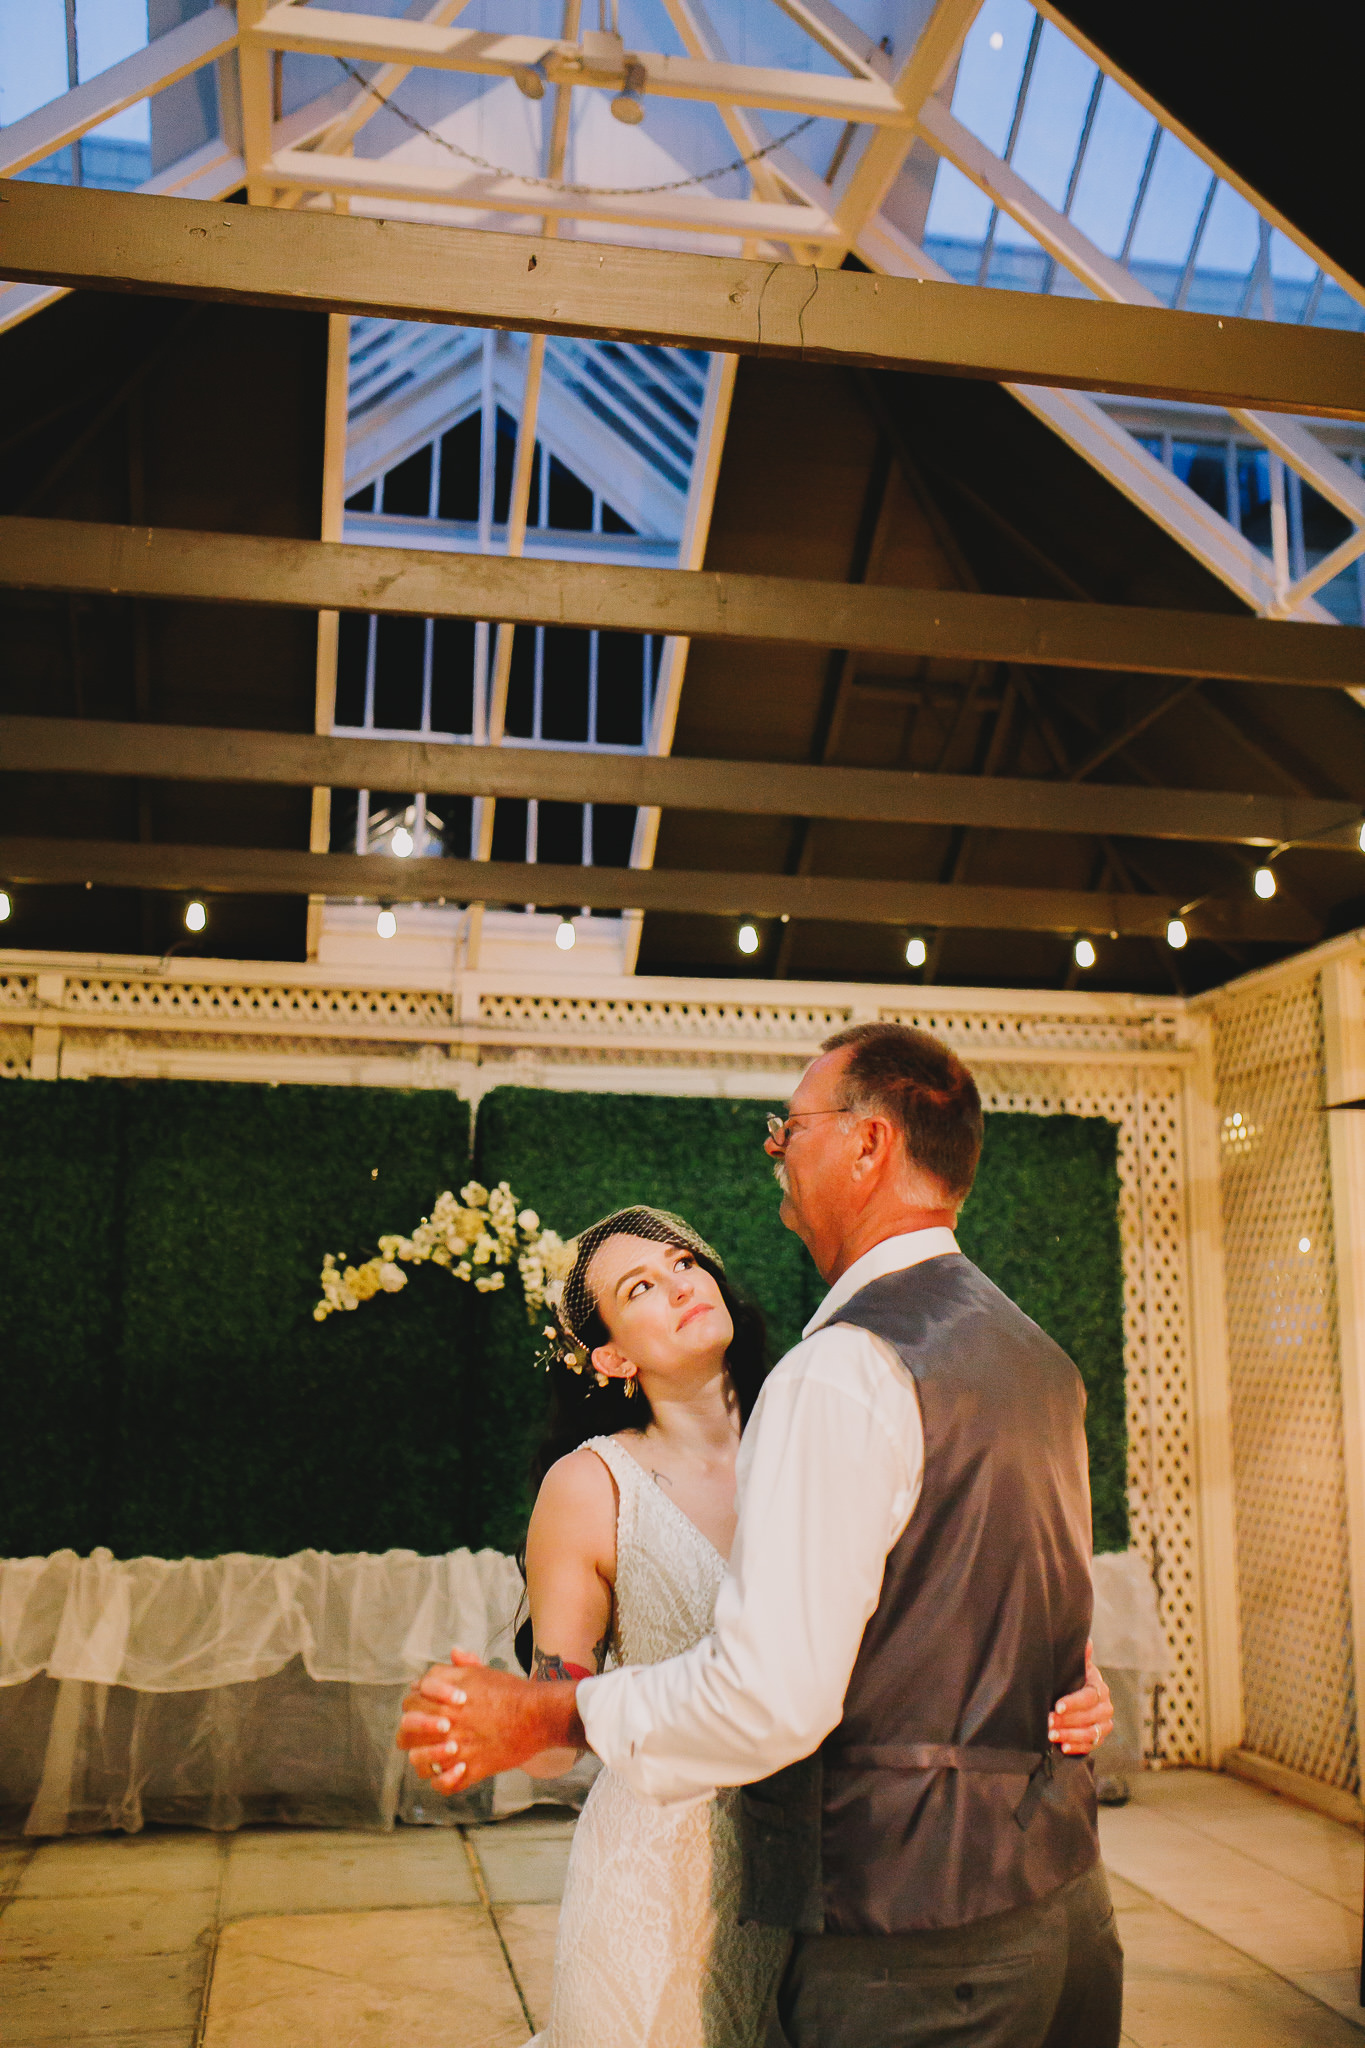 Archer Inspired Photography Sara and Aaron Winchester Mystery House NorCal San Jose California Wedding Photographer-538.jpg